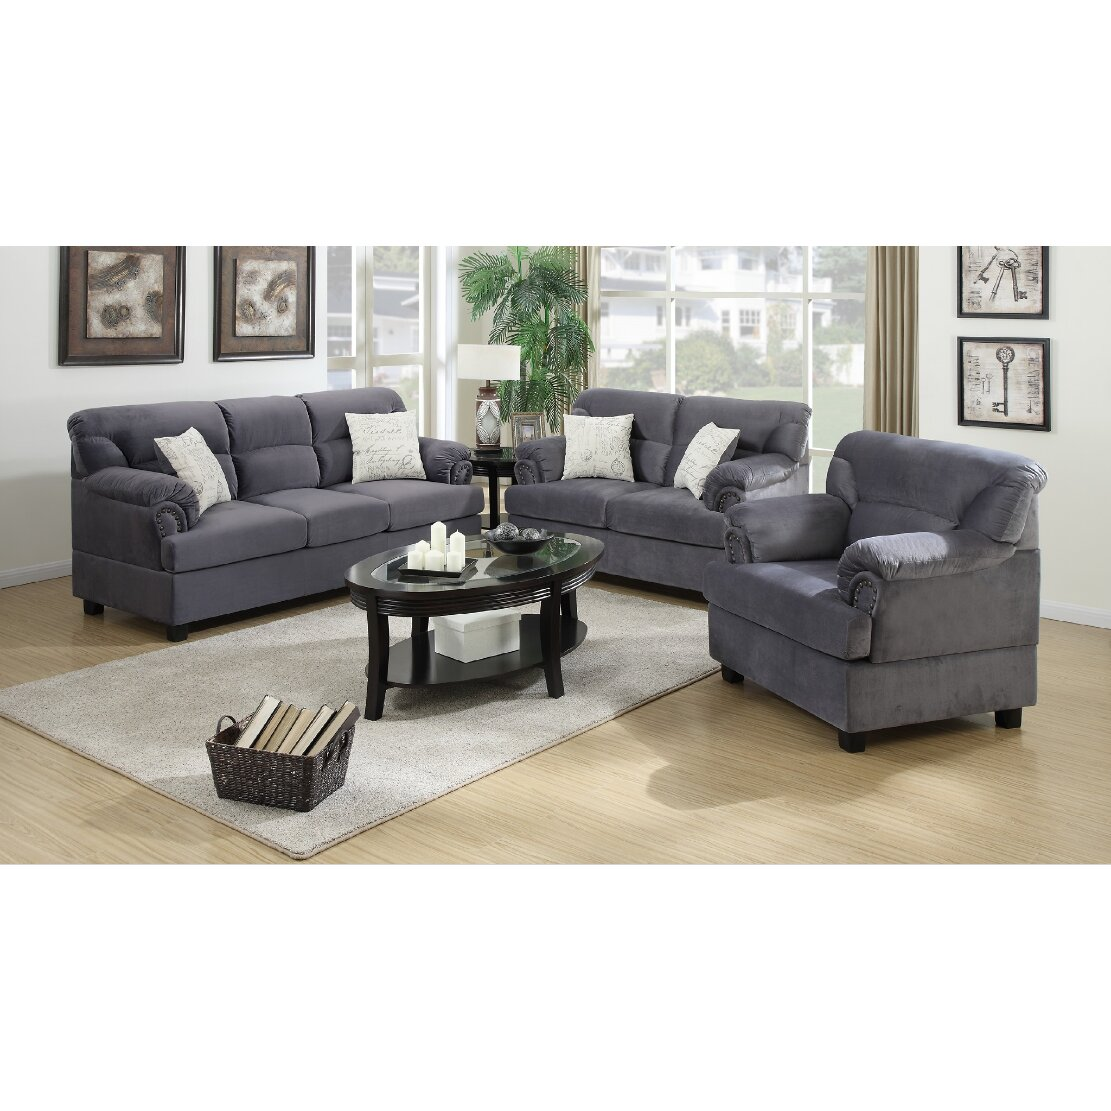 A j homes studio penny 3 piece living room set wayfair for Living room 3 piece sets